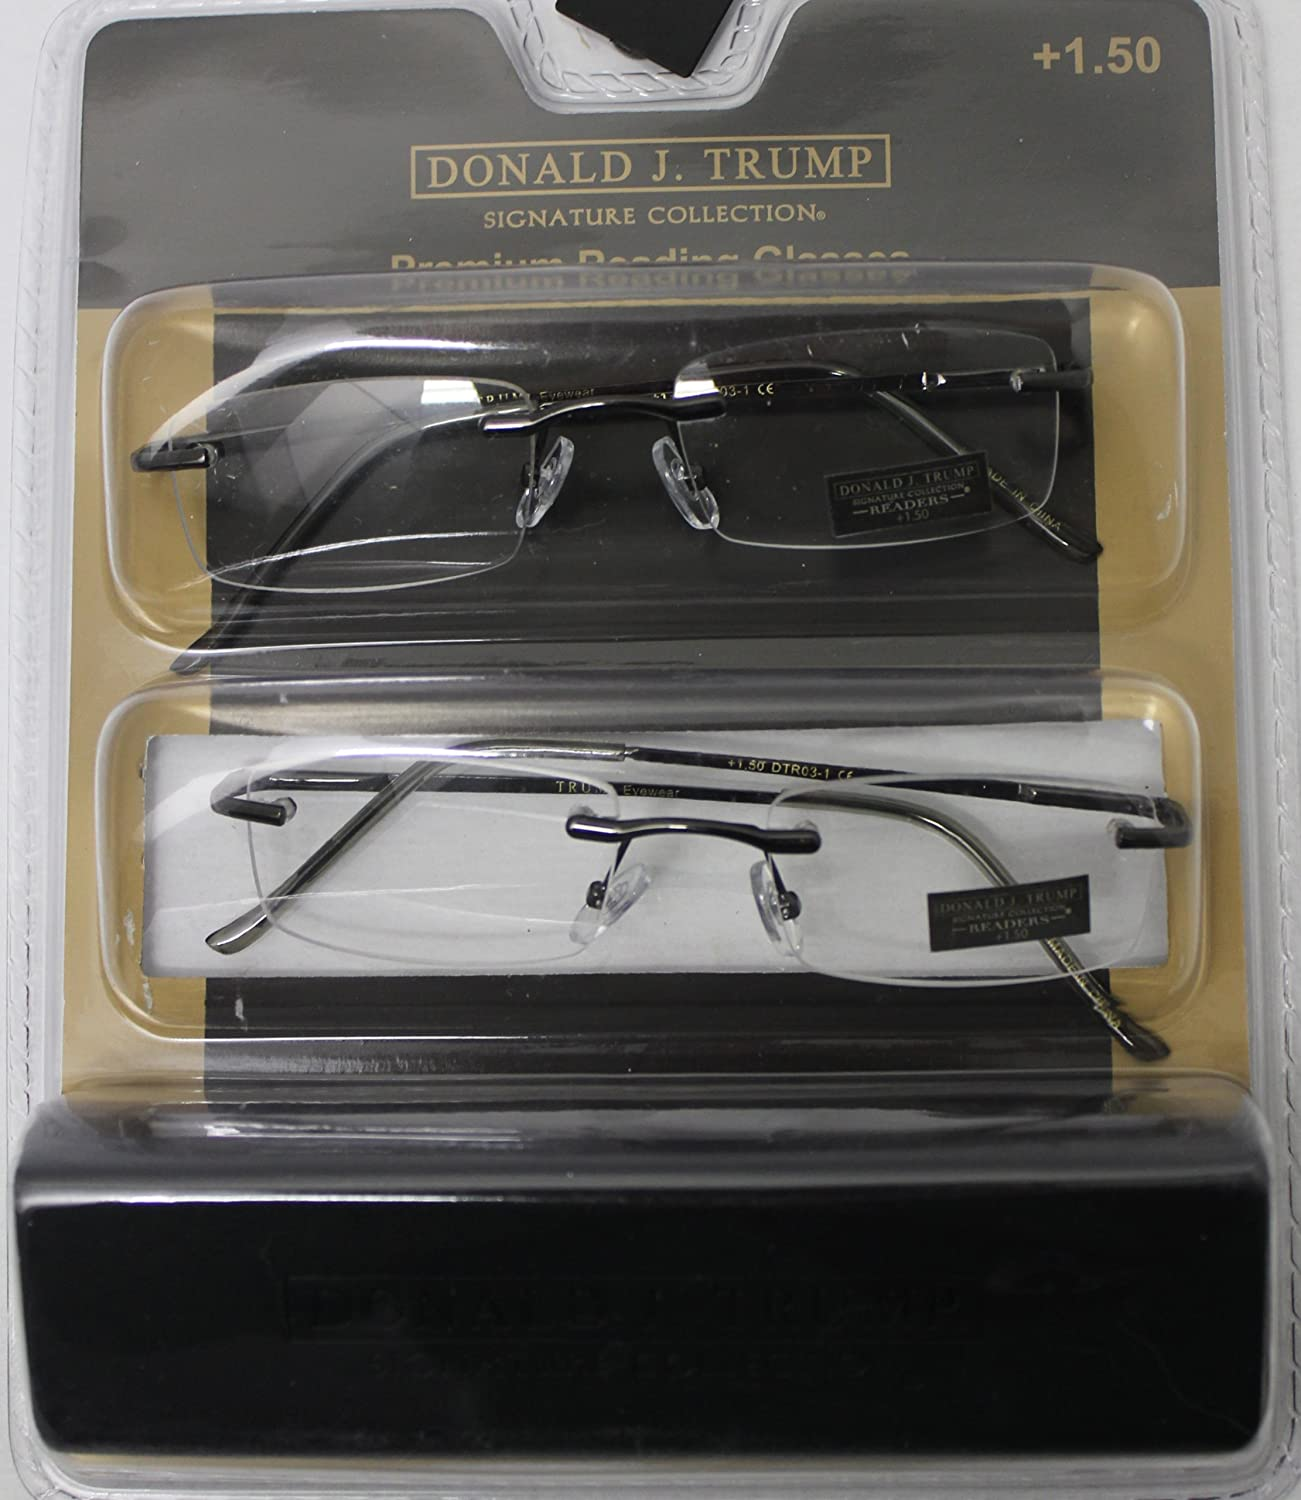 Donald Trump Readers Two Pack Rectangle Rimless Gunmetal, Eyewear Power +1.50